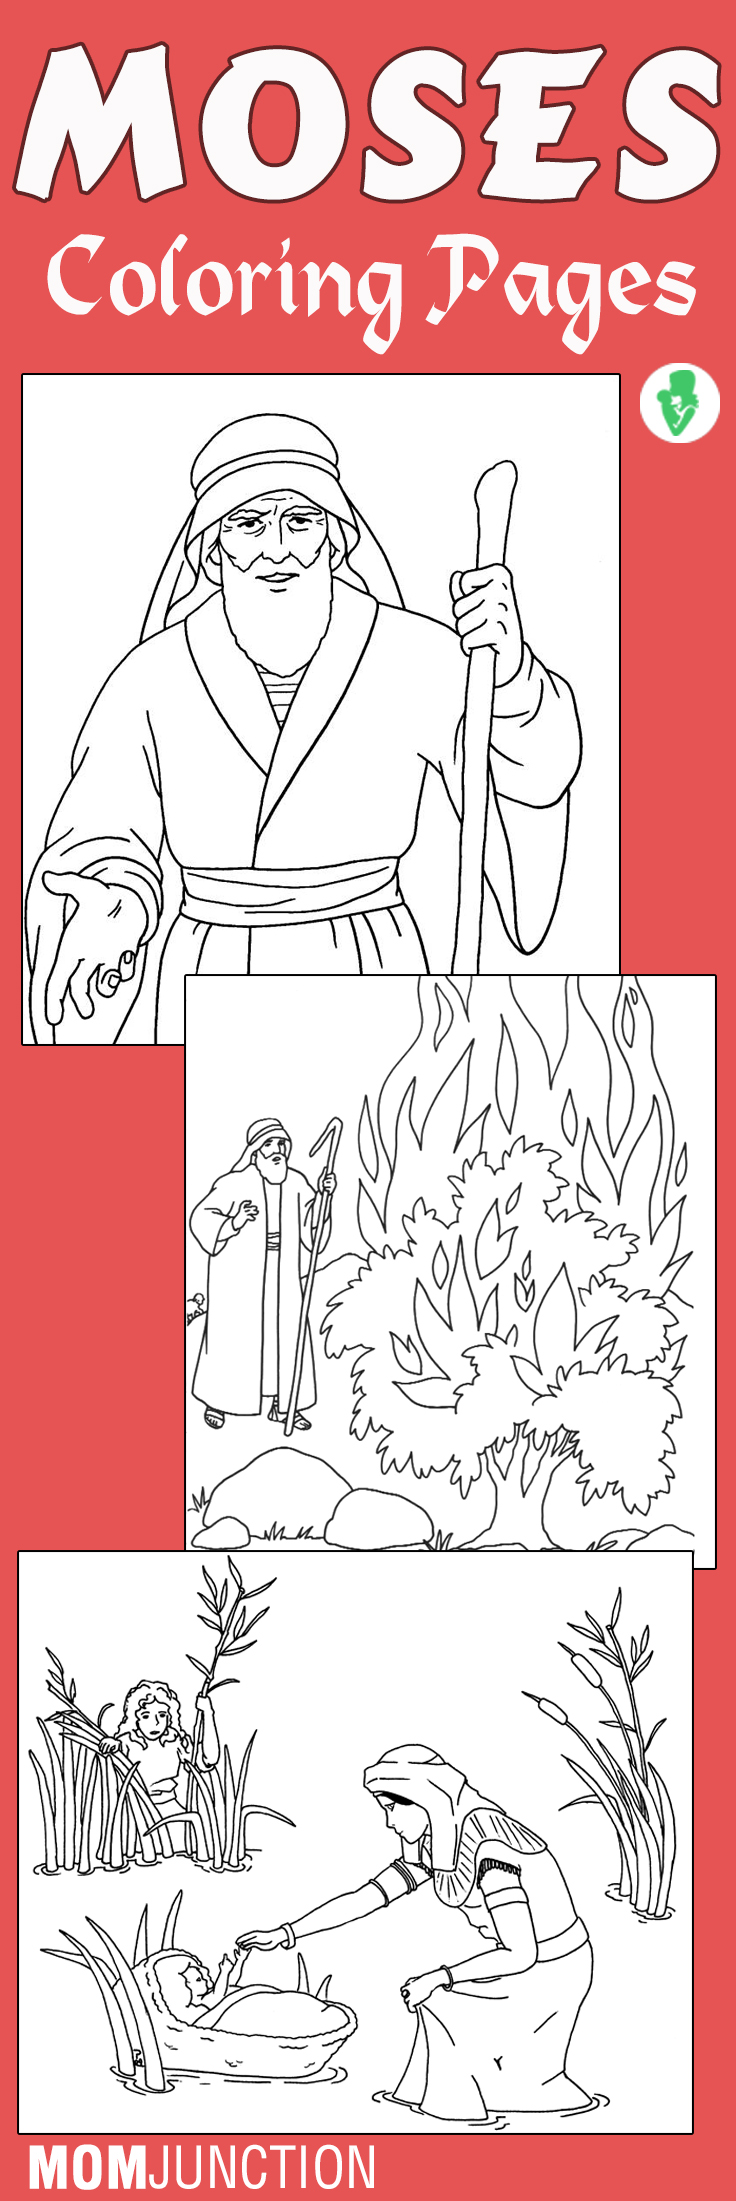 Coloring pages moses and ten commandments - Coloring Pages Moses And Ten Commandments 55